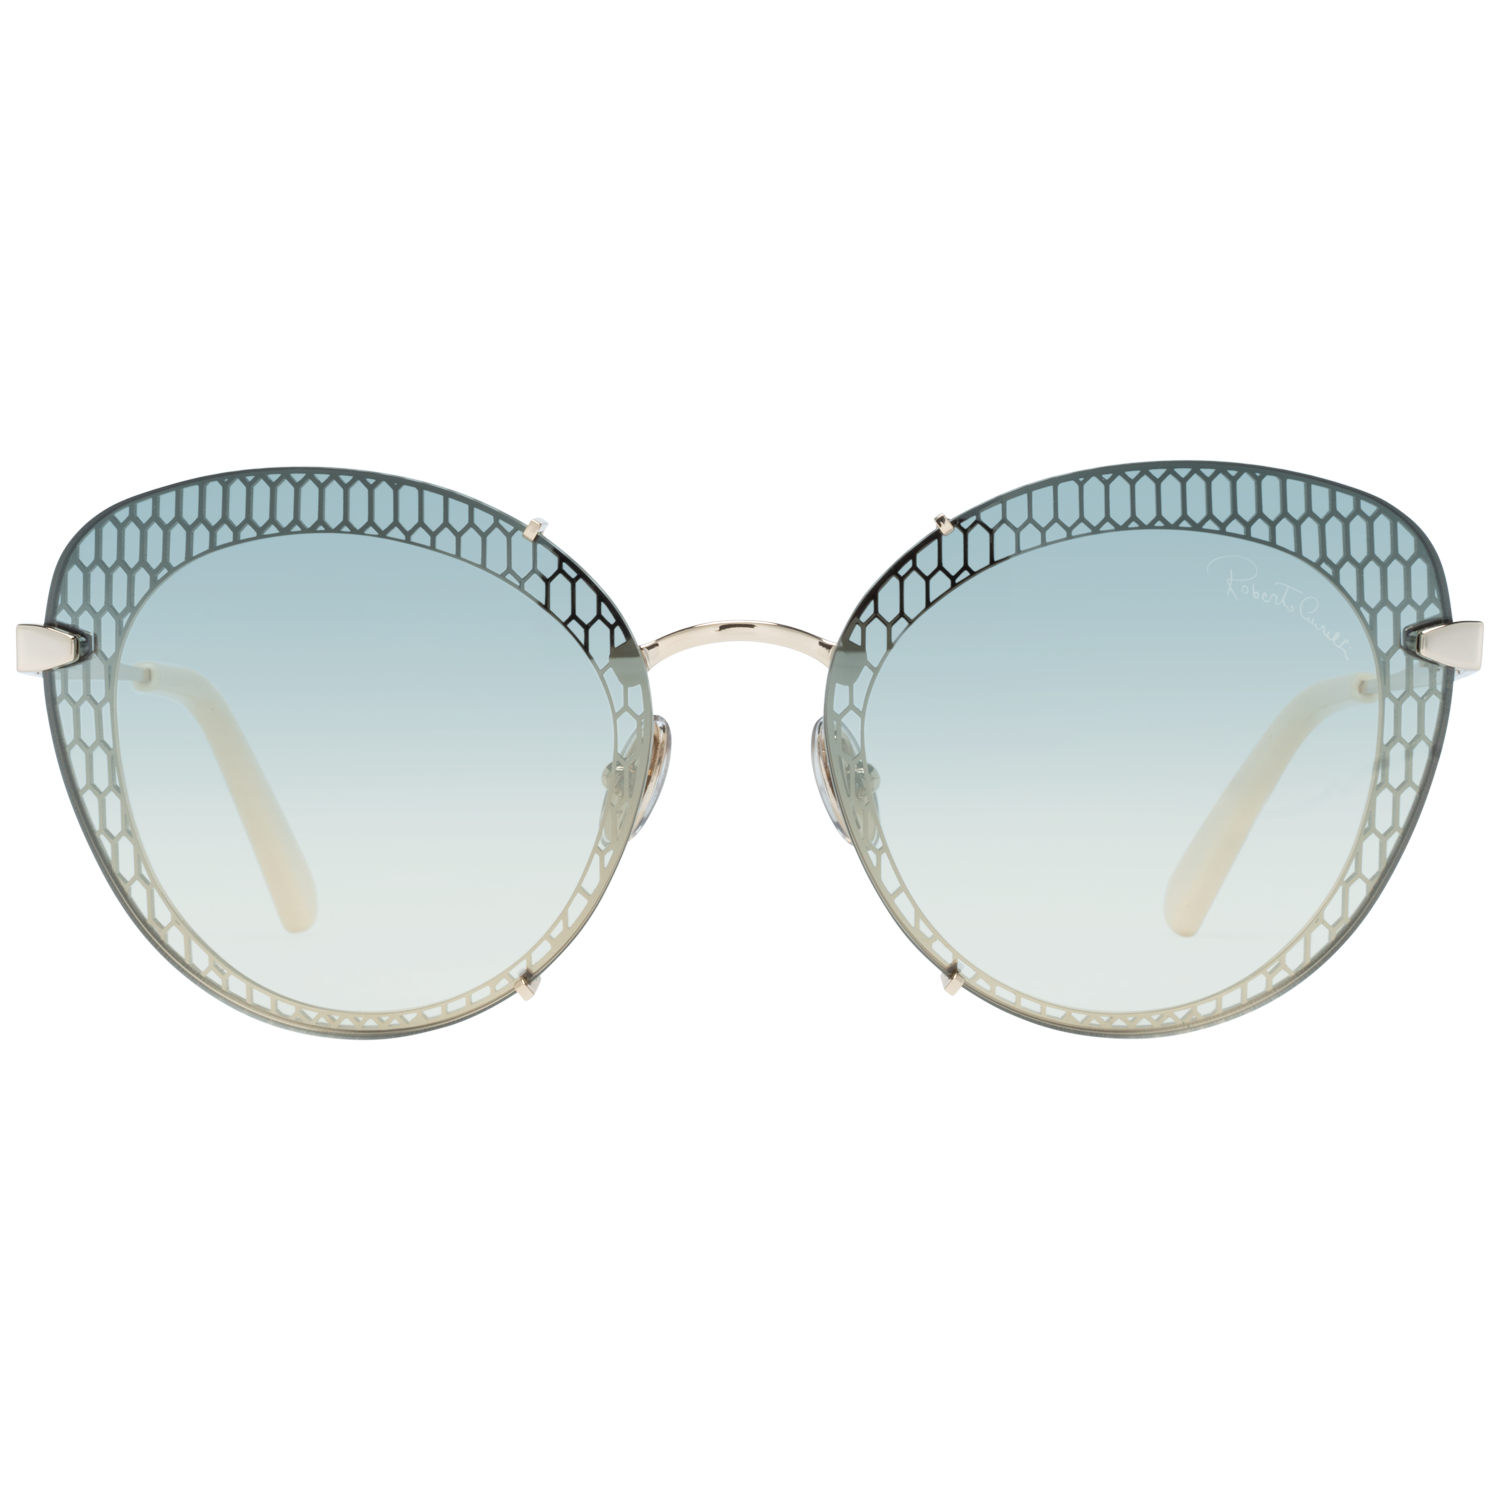 Roberto Cavalli Sunglasses RC1141 32Q 63 Women Gold